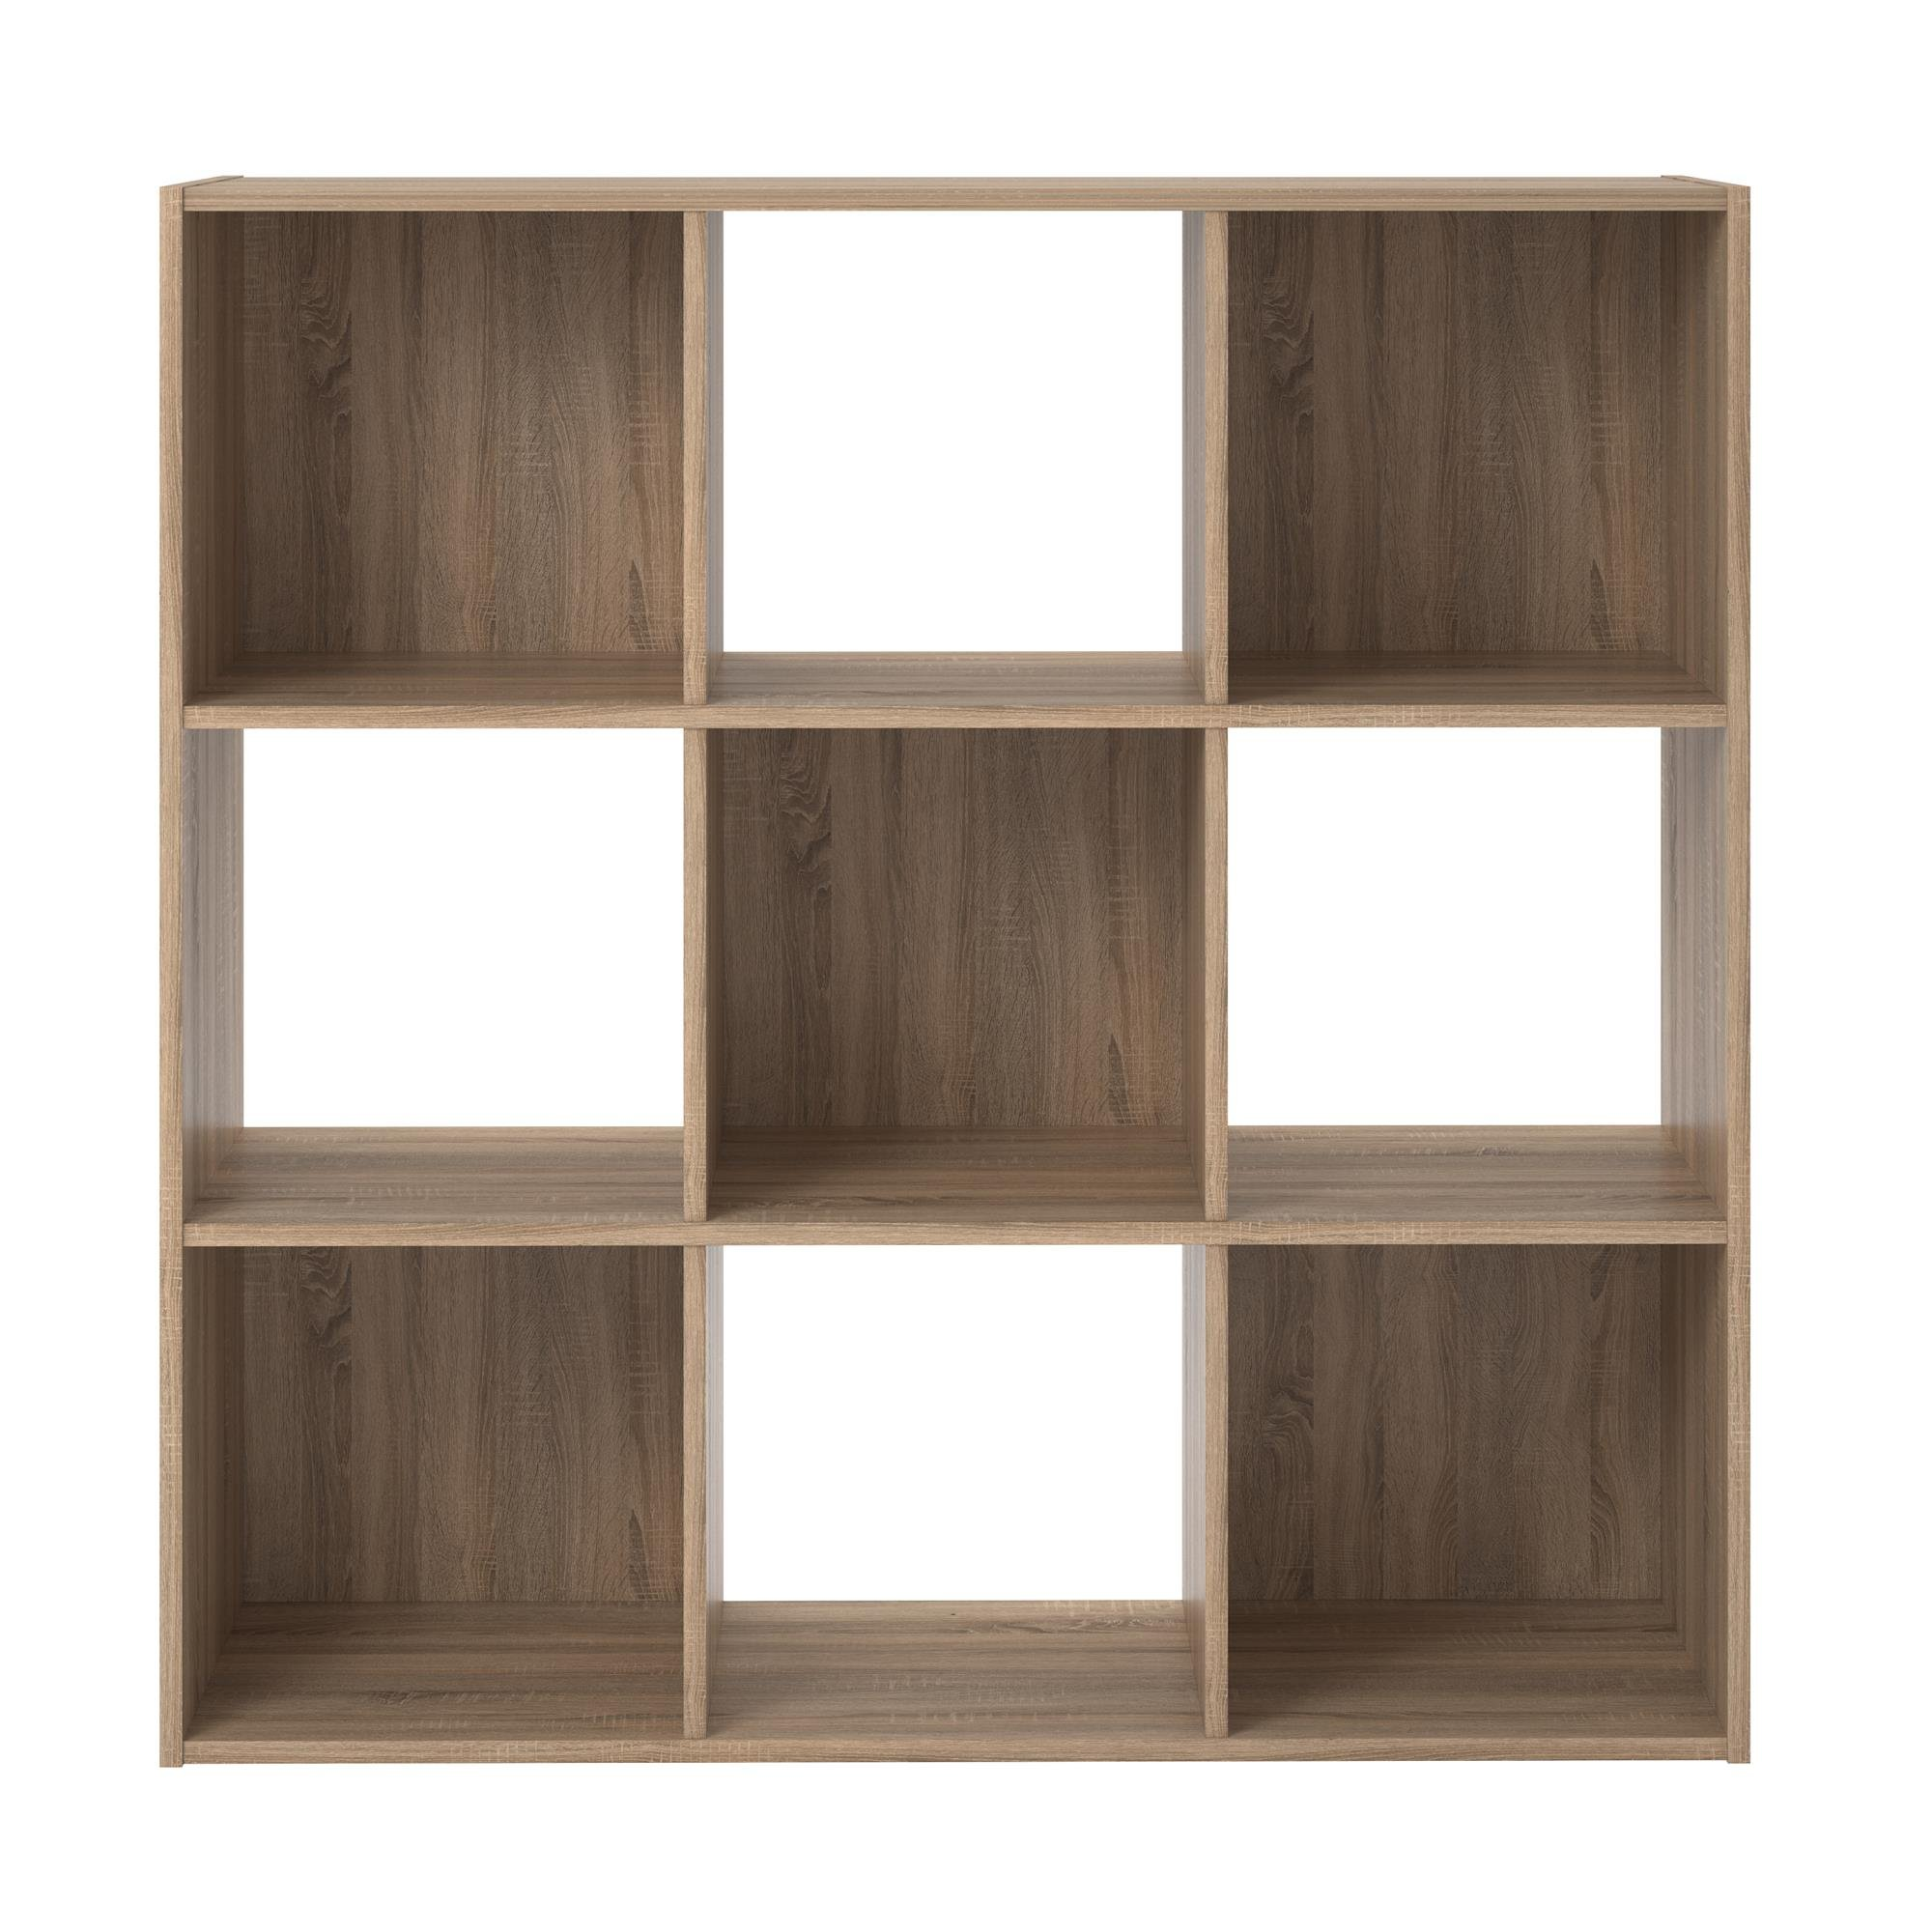 RealRooms Tally 9 Cube Bookcase, Weathered Oak by REALROOMS (Image #5)